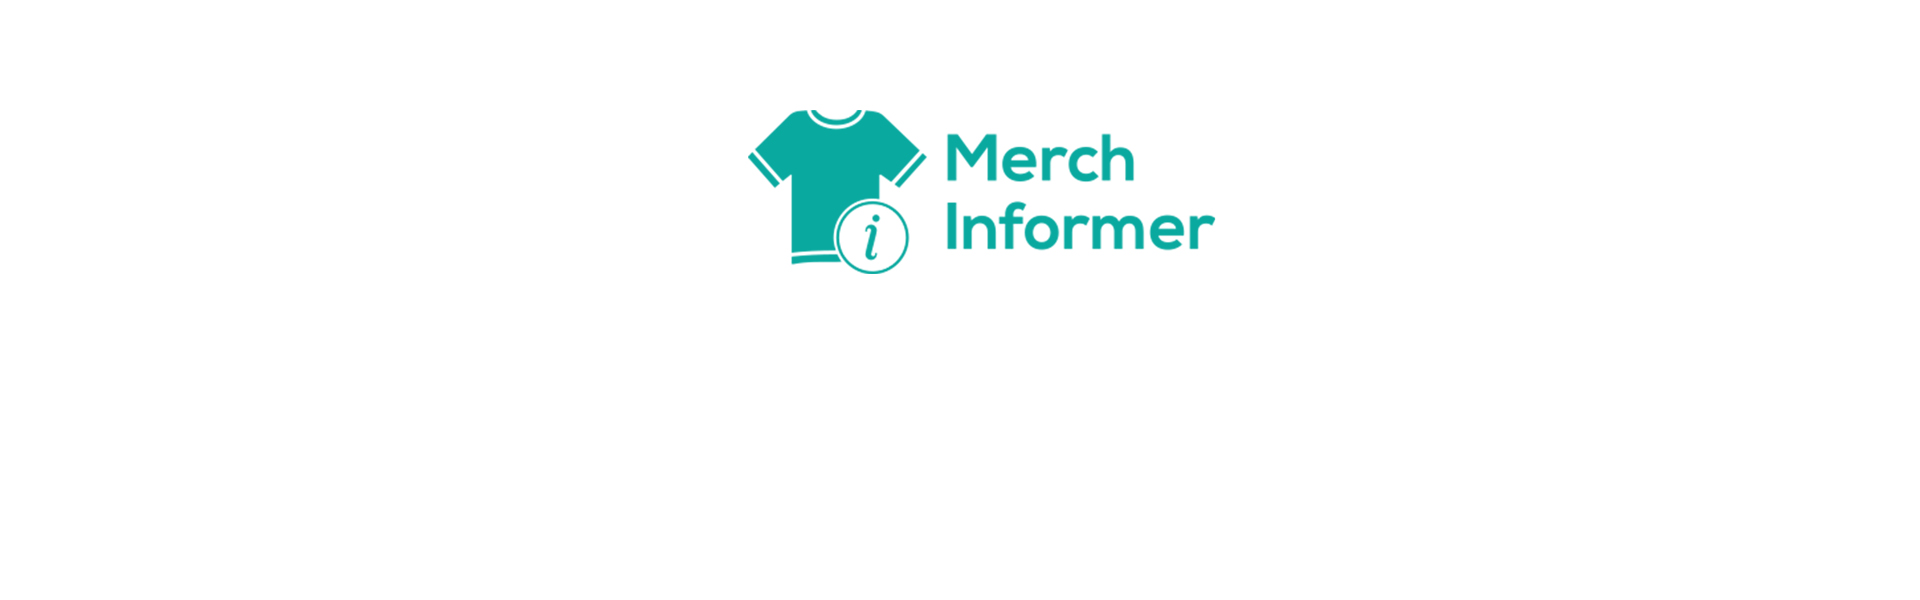 Merch Informer – Selling Merch Online Does Not Need To Be Stressful